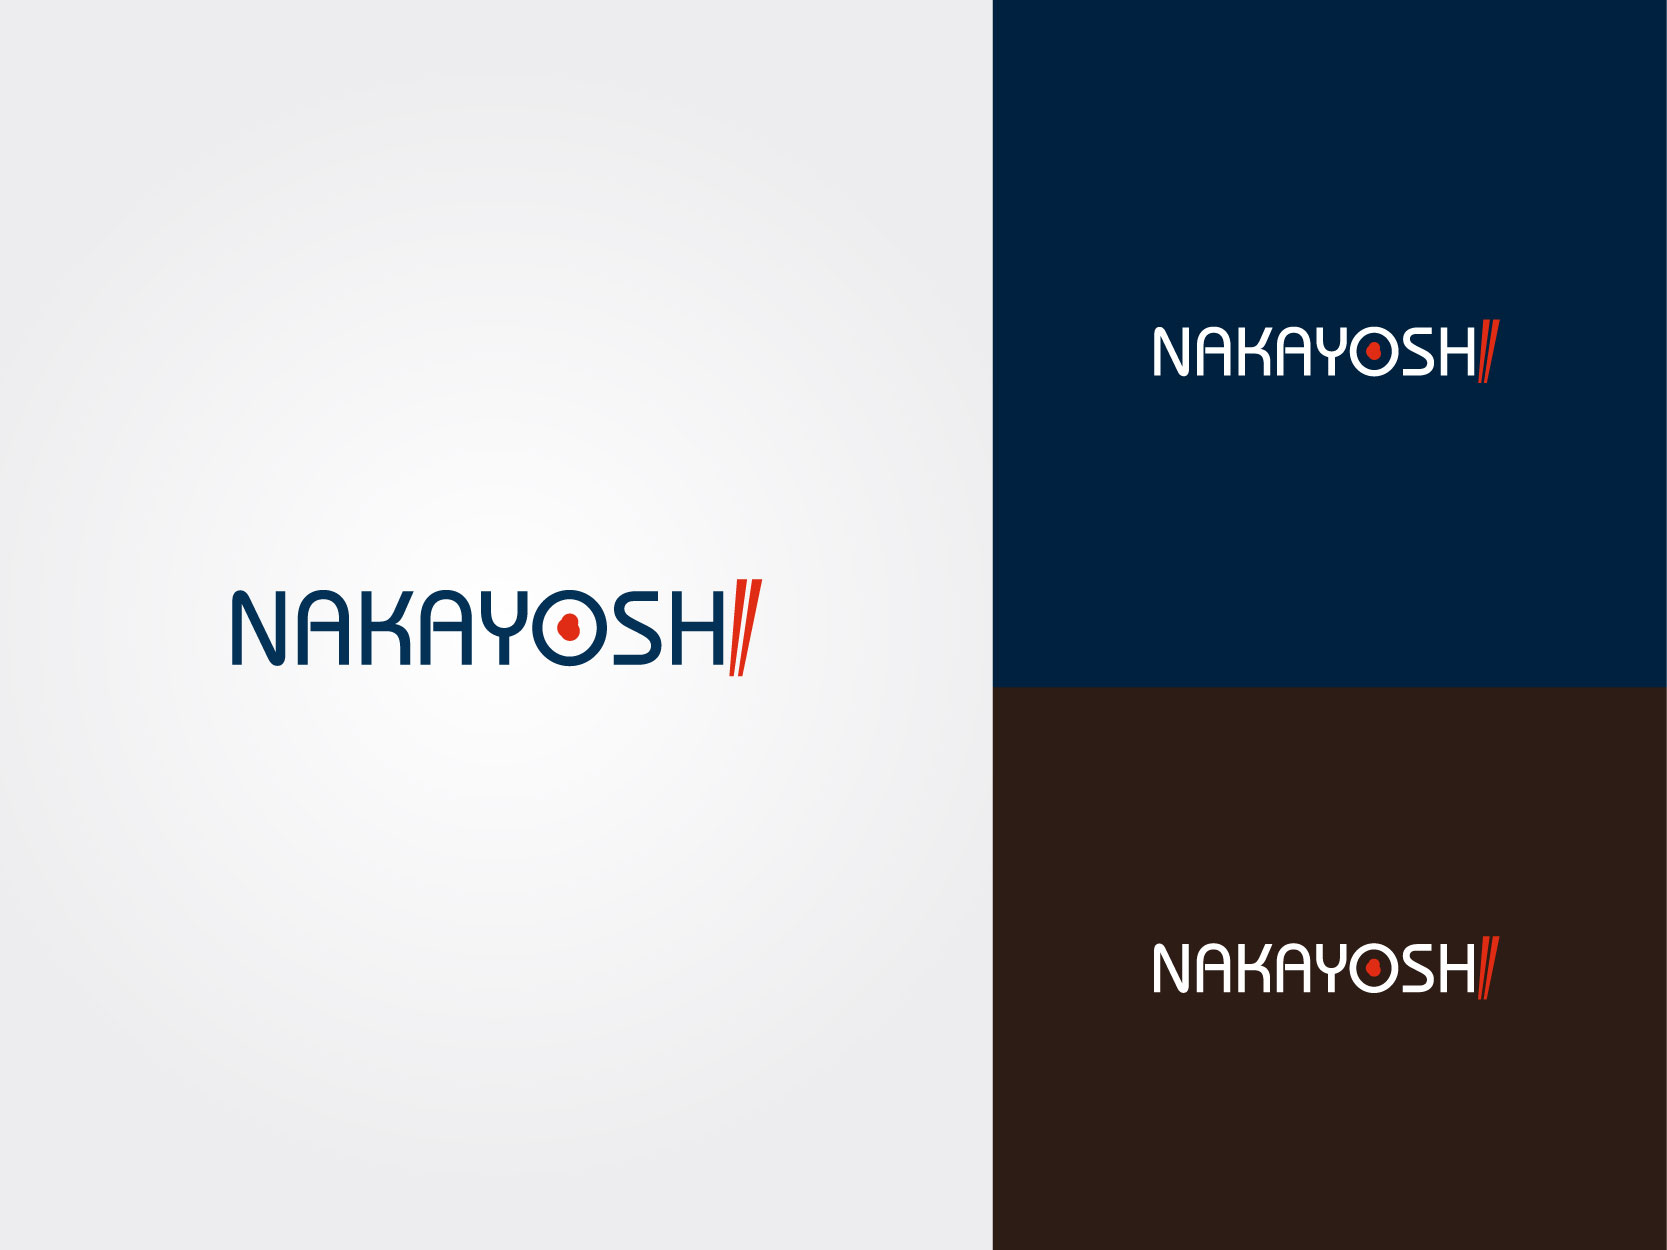 Logo Design by Osi Indra - Entry No. 12 in the Logo Design Contest Imaginative Logo Design for NAKAYOSHI.